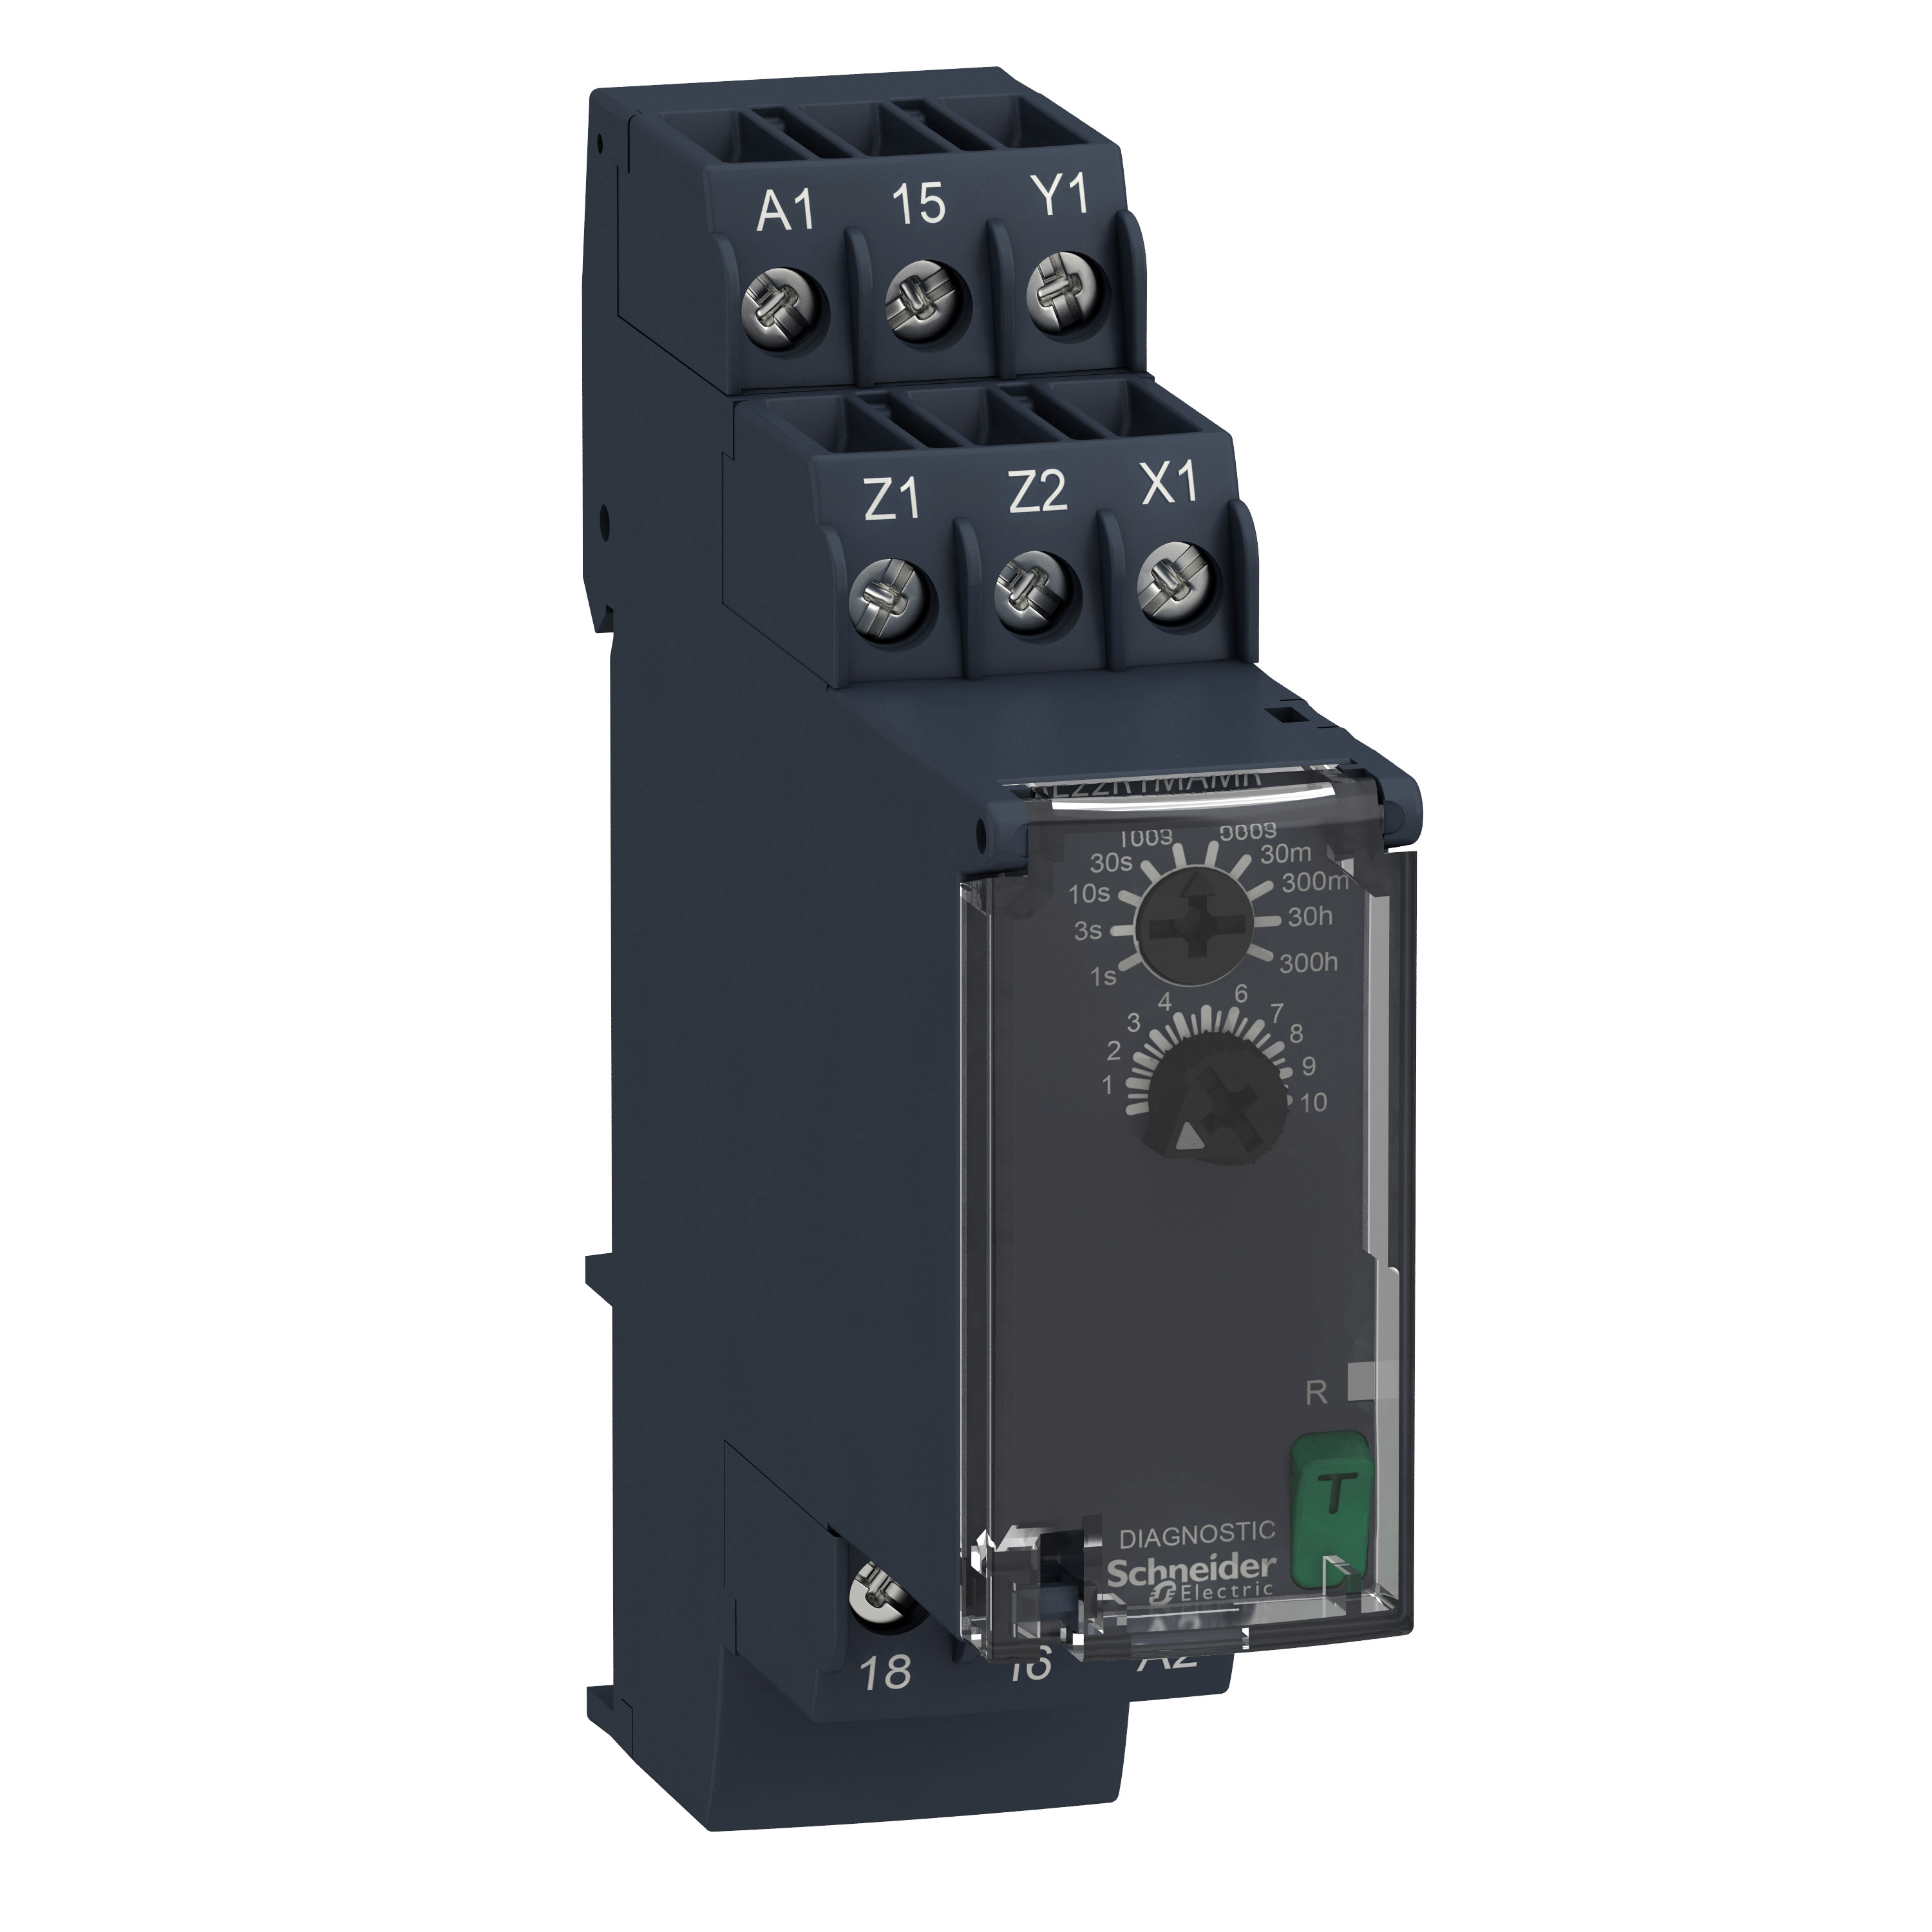 SQUARE D Modular timing relay, 8 A, 1 CO, 0.05 s…300 h, on delay, 24...240 V AC/DC